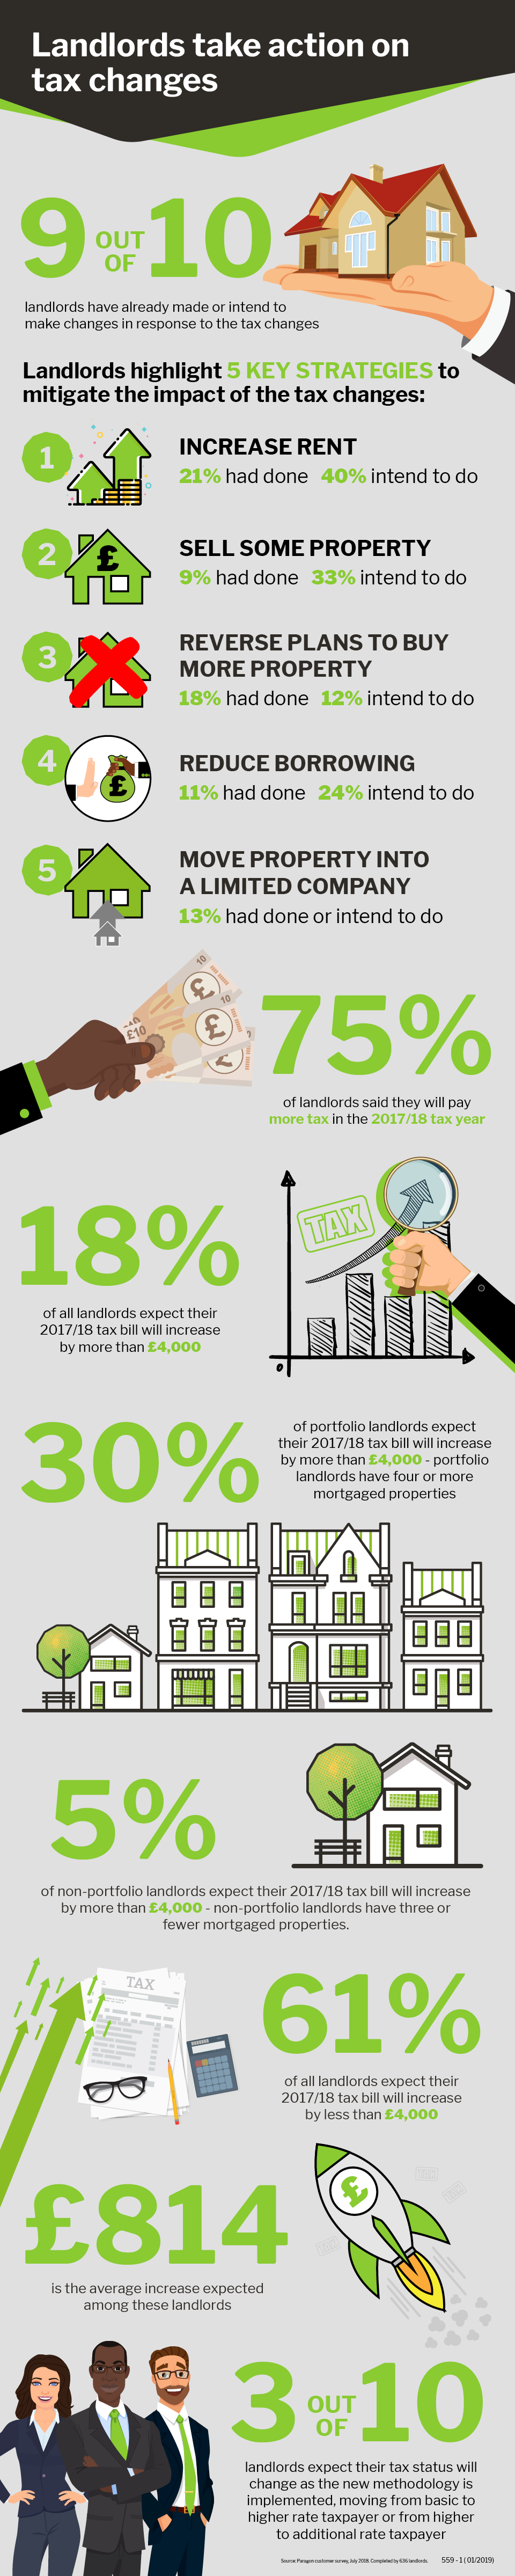 Landlords take action - Infographic